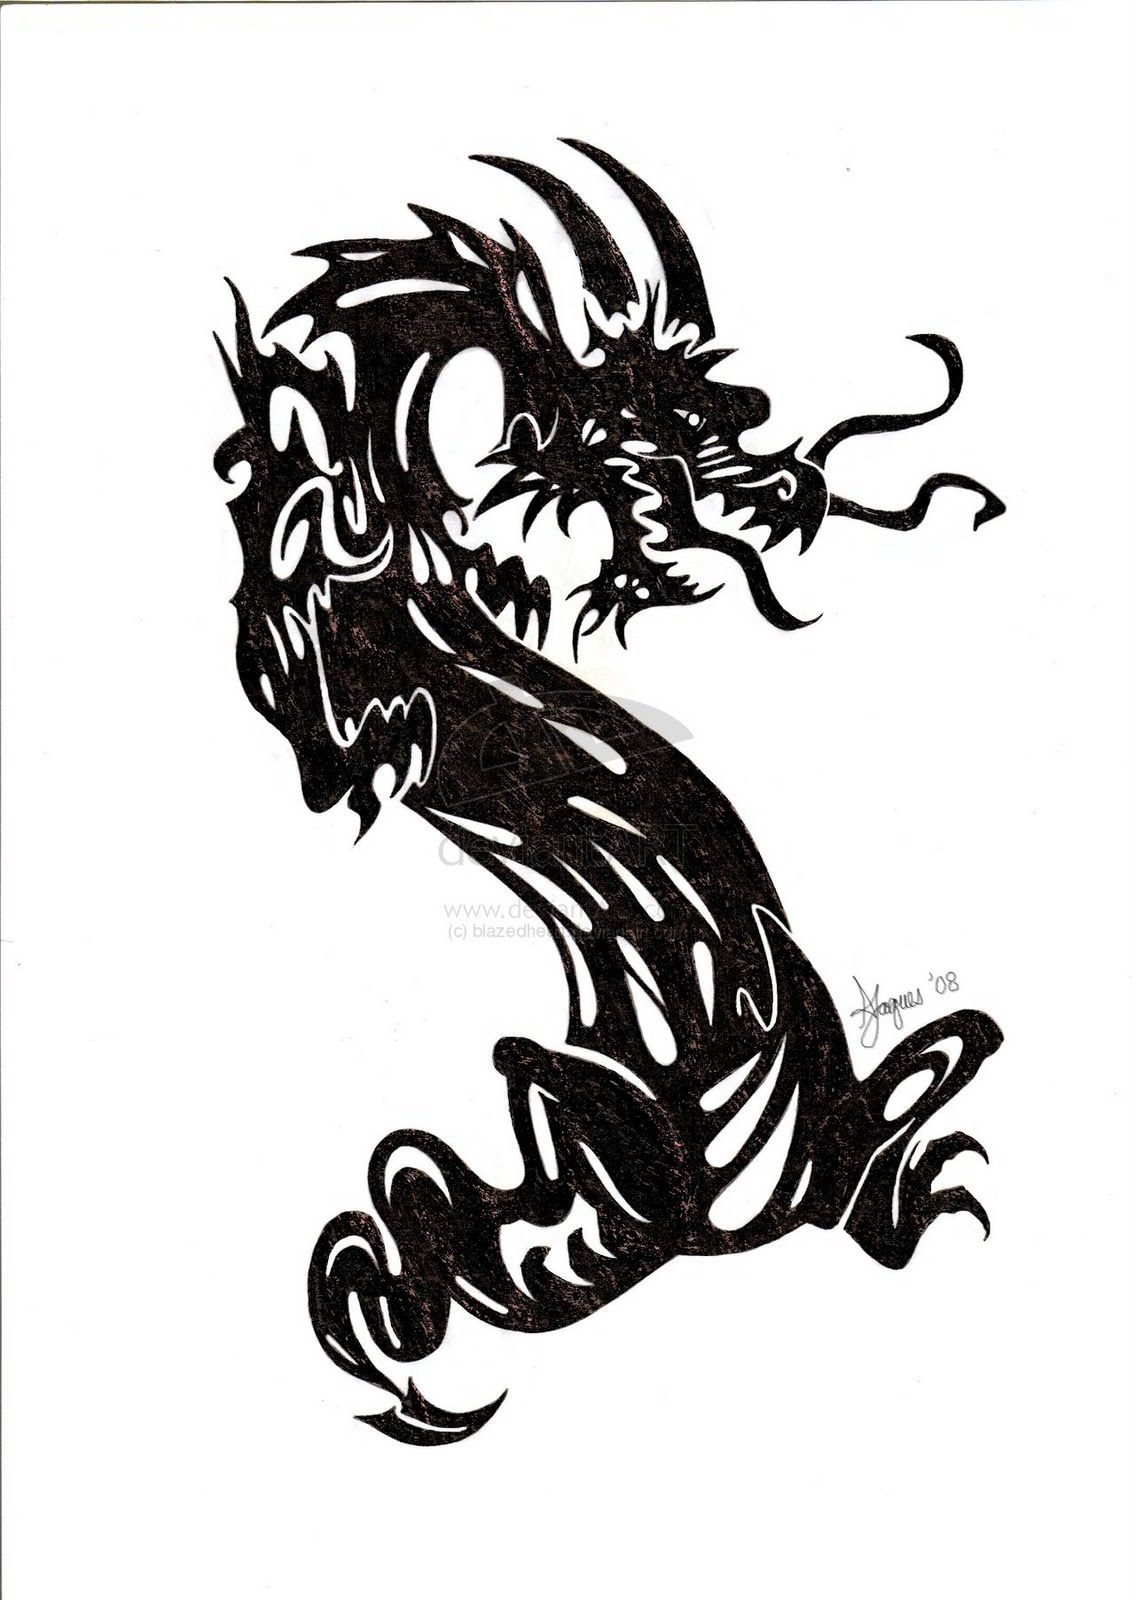 13 black tribal dragon tattoo designs 60 popular dragon tattoos with. Black Bedroom Furniture Sets. Home Design Ideas